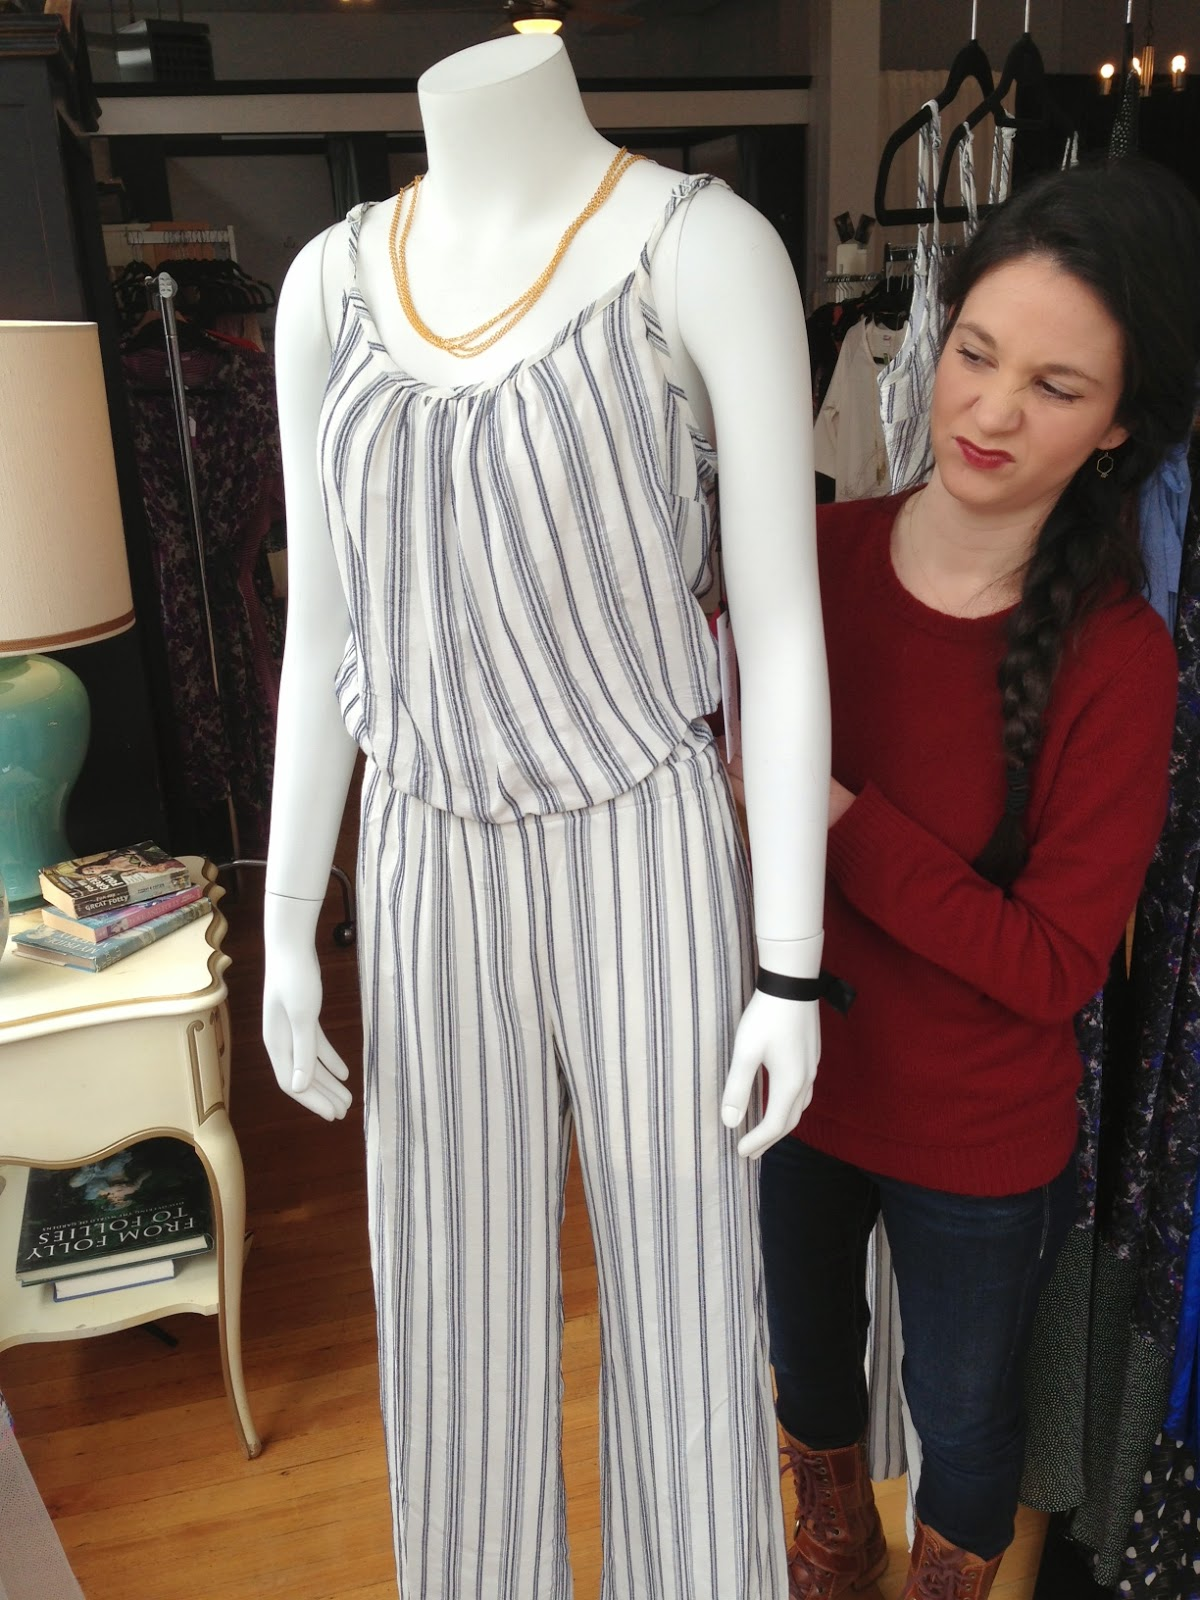 Jumpsuit by Fifteen-Twenty ($184), necklace by Nicole Weldon Jewelry ($34) at Folly